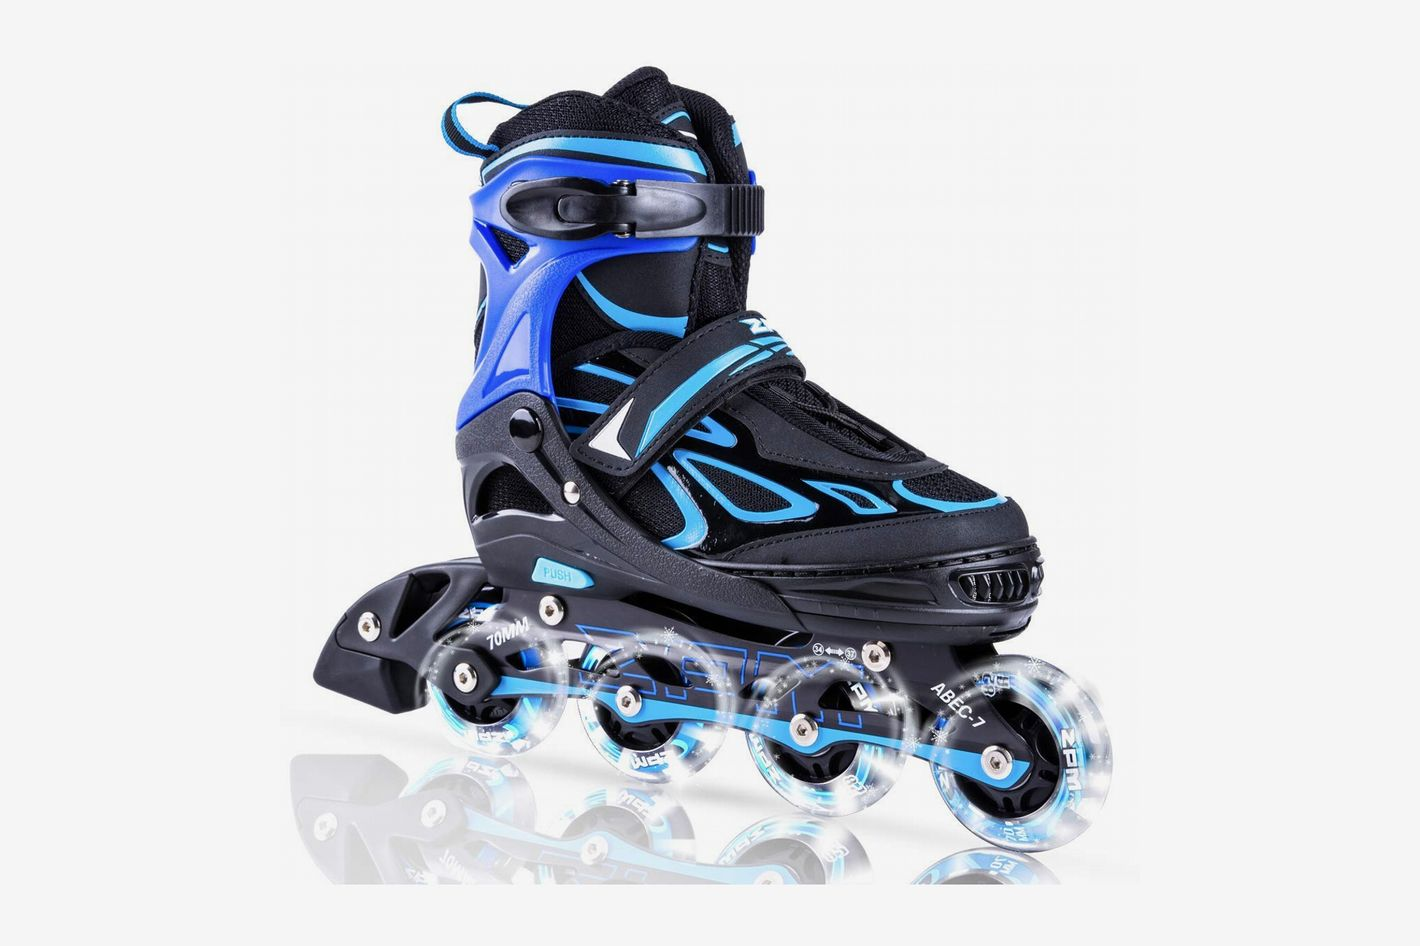 2PM Sports Adjustable Inline Skates with Light up Wheels